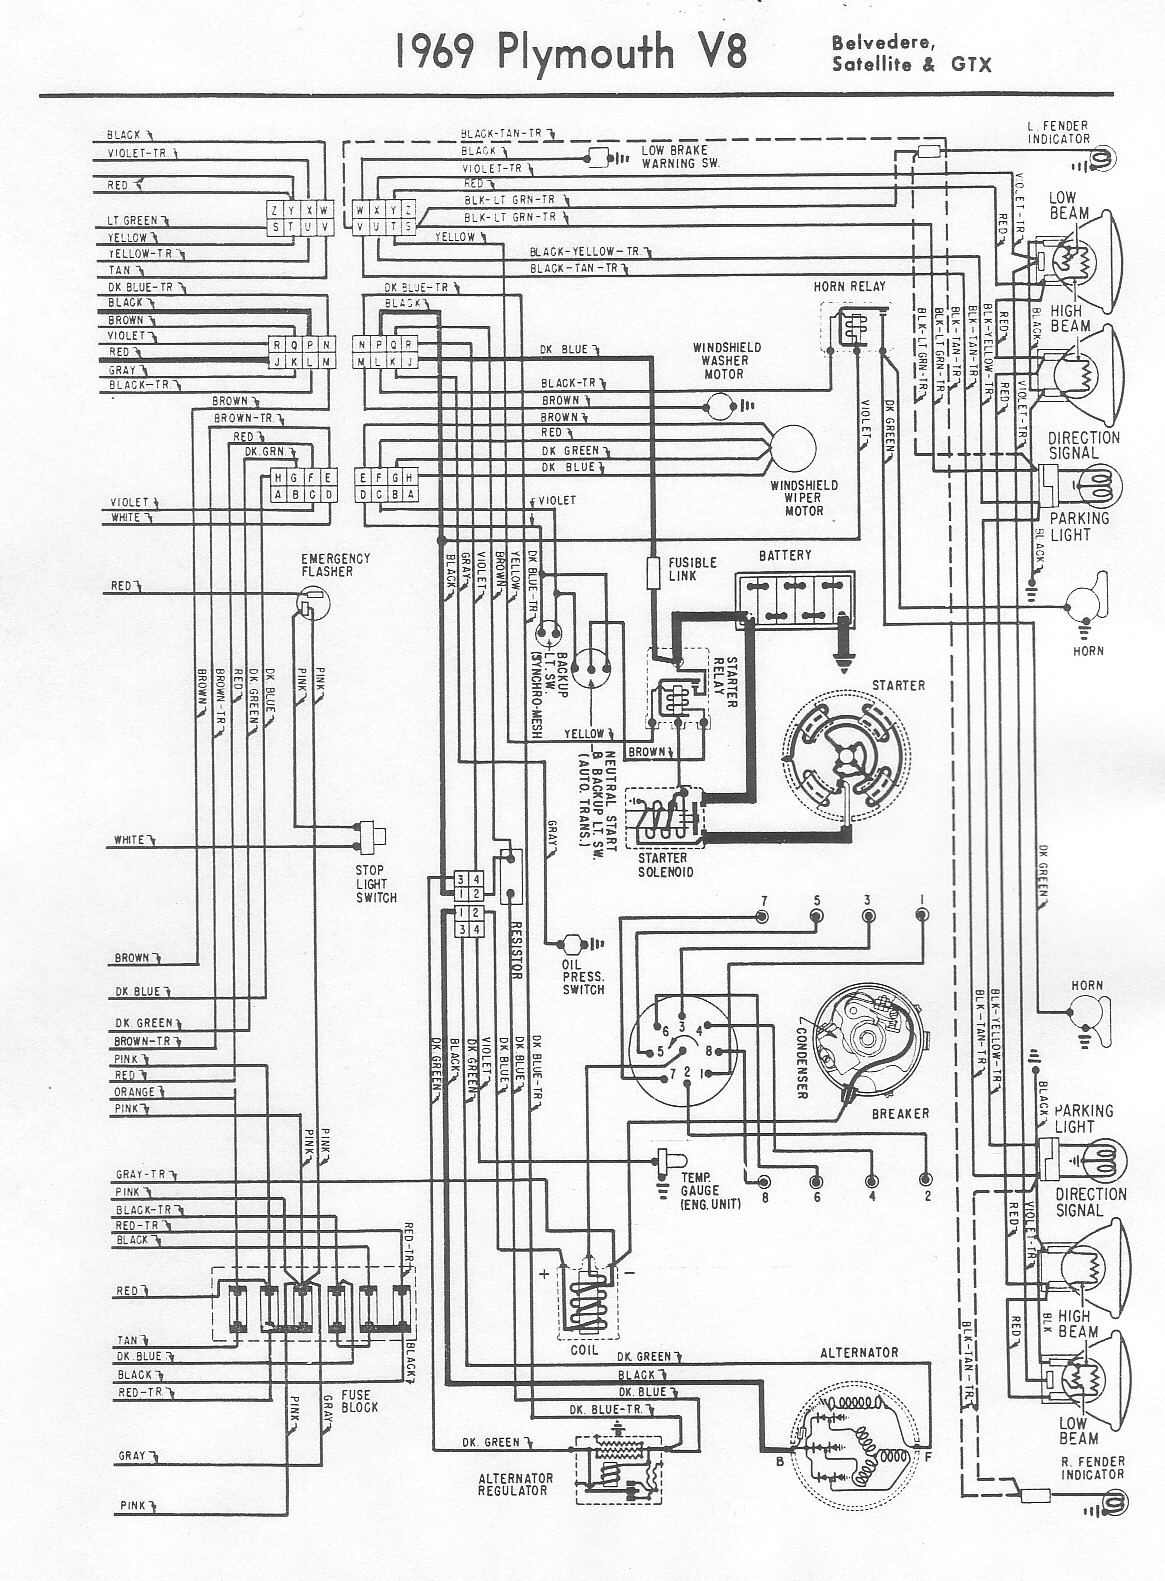 70 Charger Wiring Harness Library Connect Generator To House As Well Ignition Kill Switch 1968 Plymouth Roadrunner Diagram Opinions About 1970 Duster Gtx